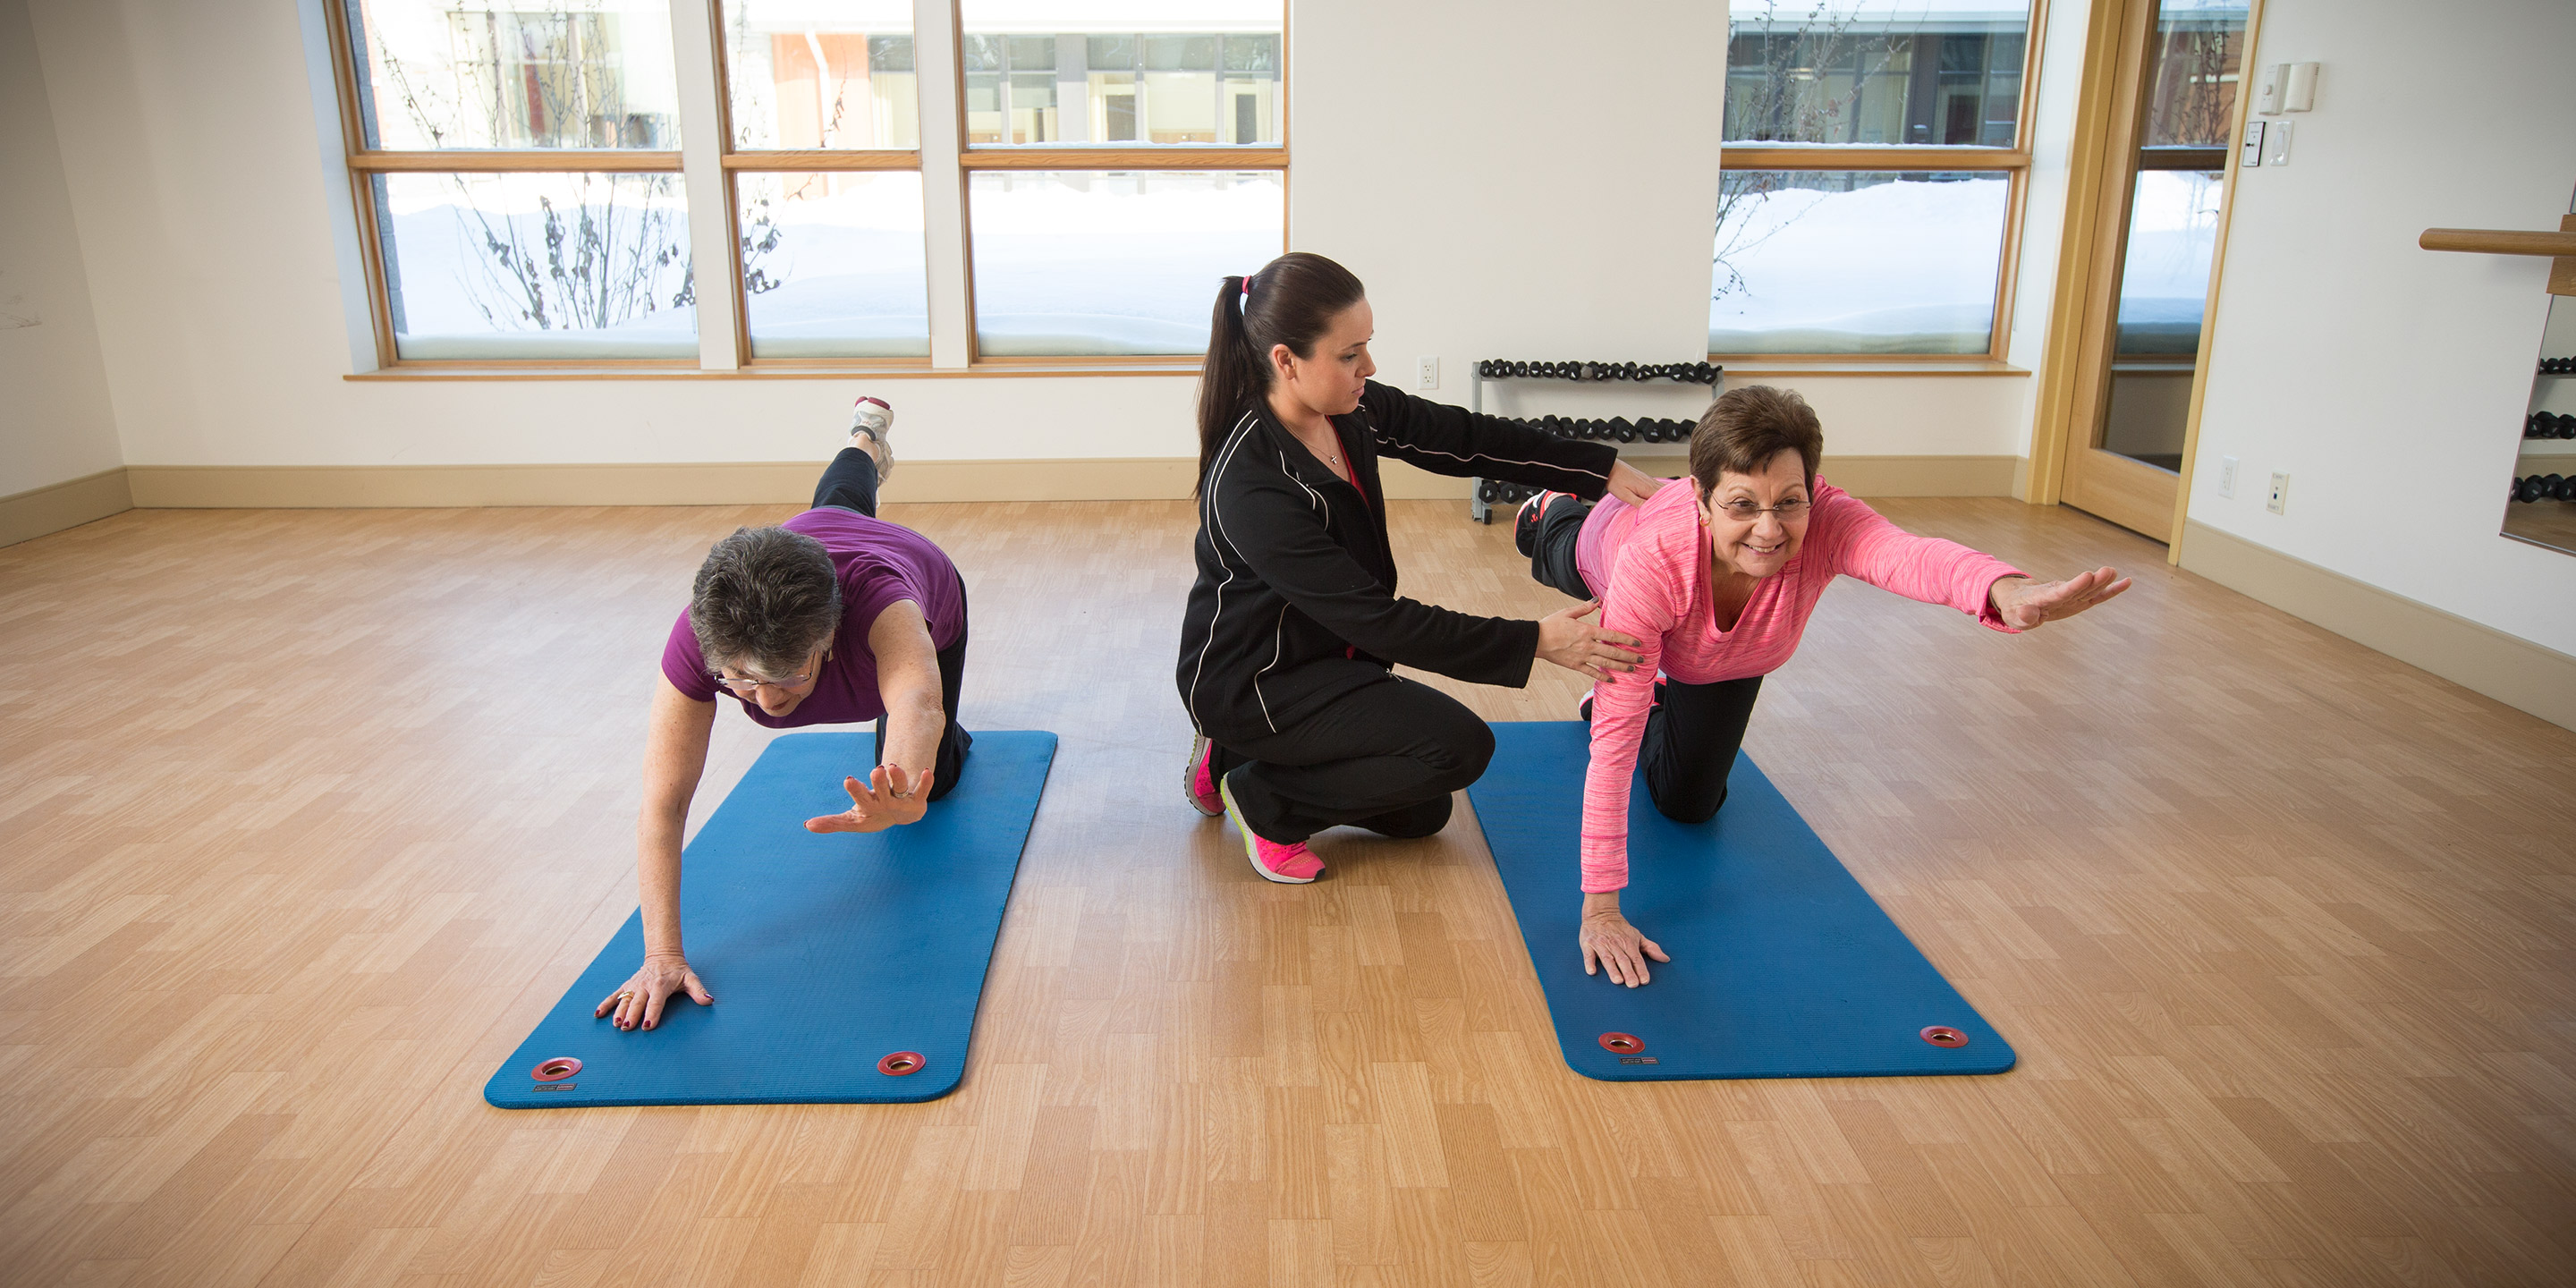 Two women do yoga poses while one gets help from an instructor